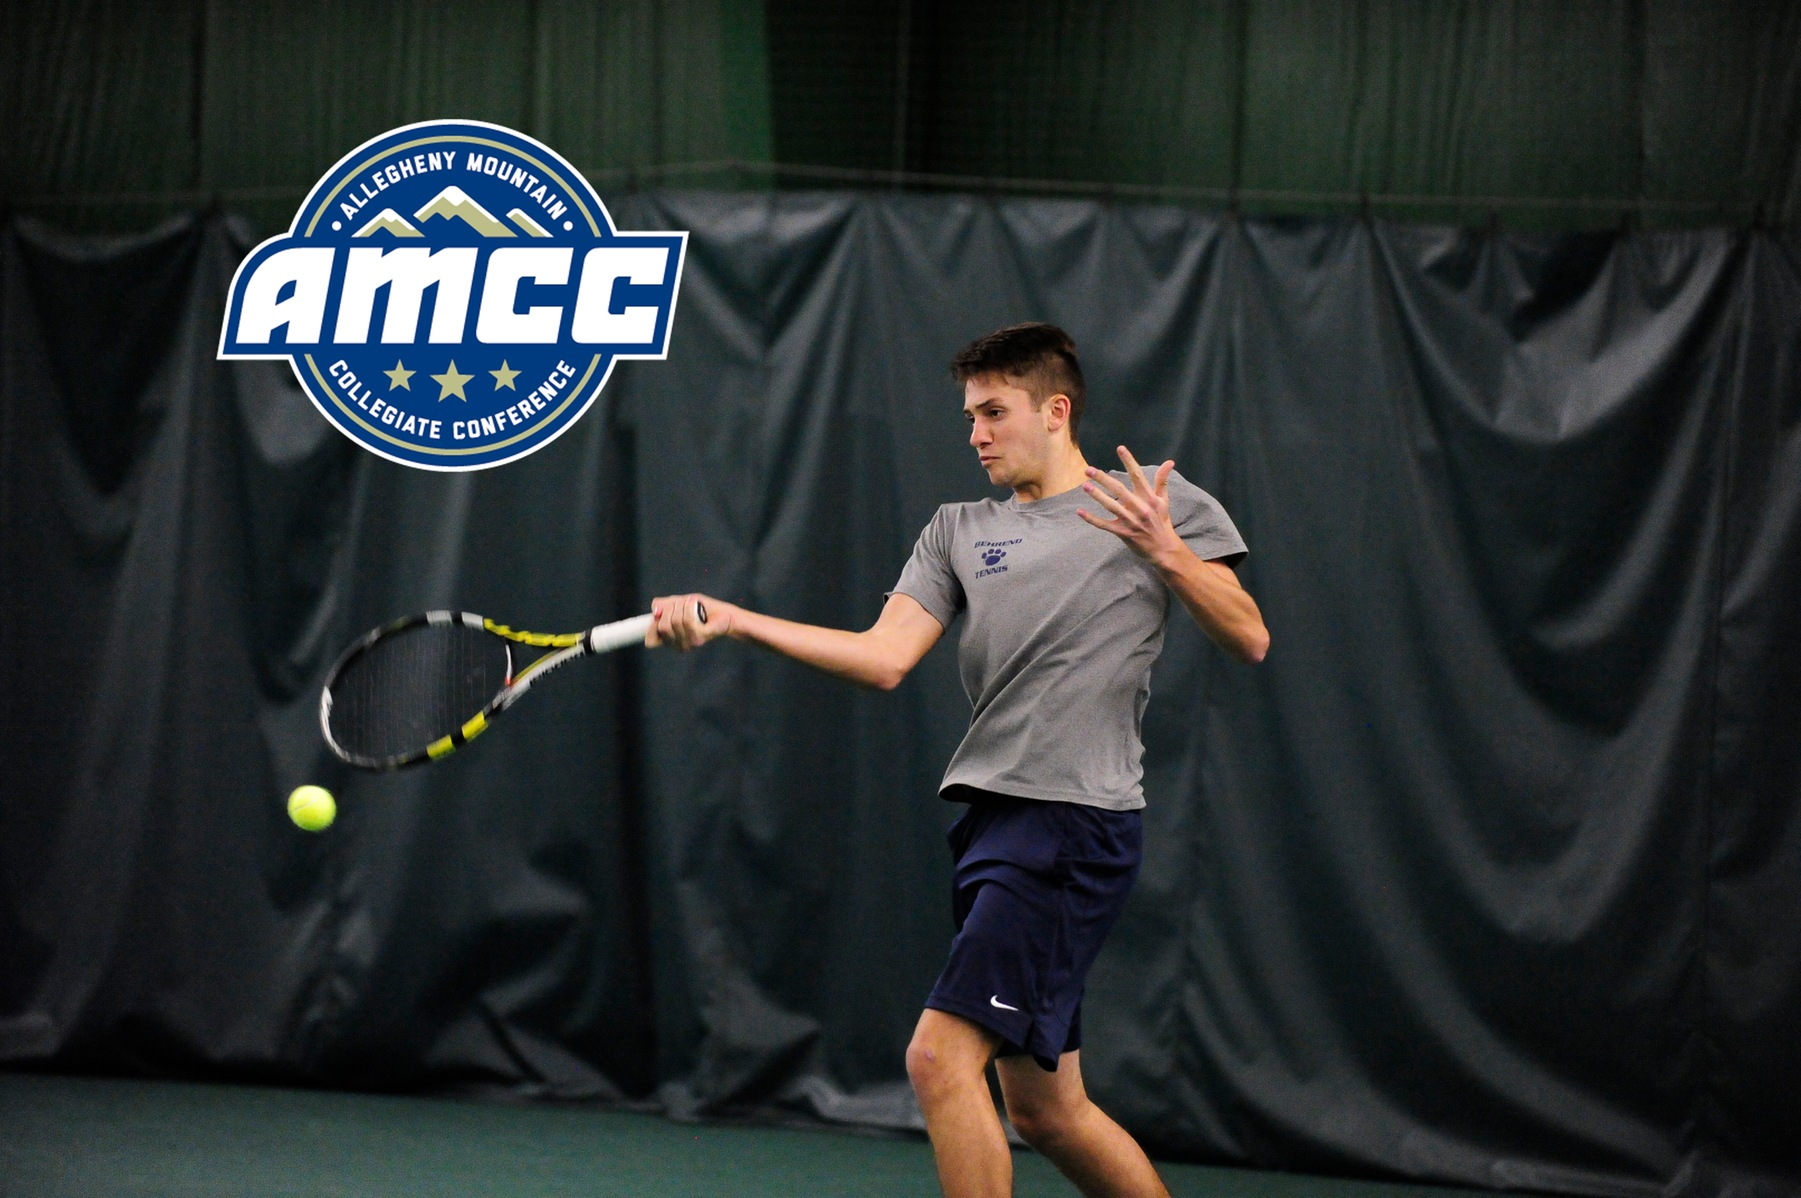 Russel Named AMCC Athlete of the Week